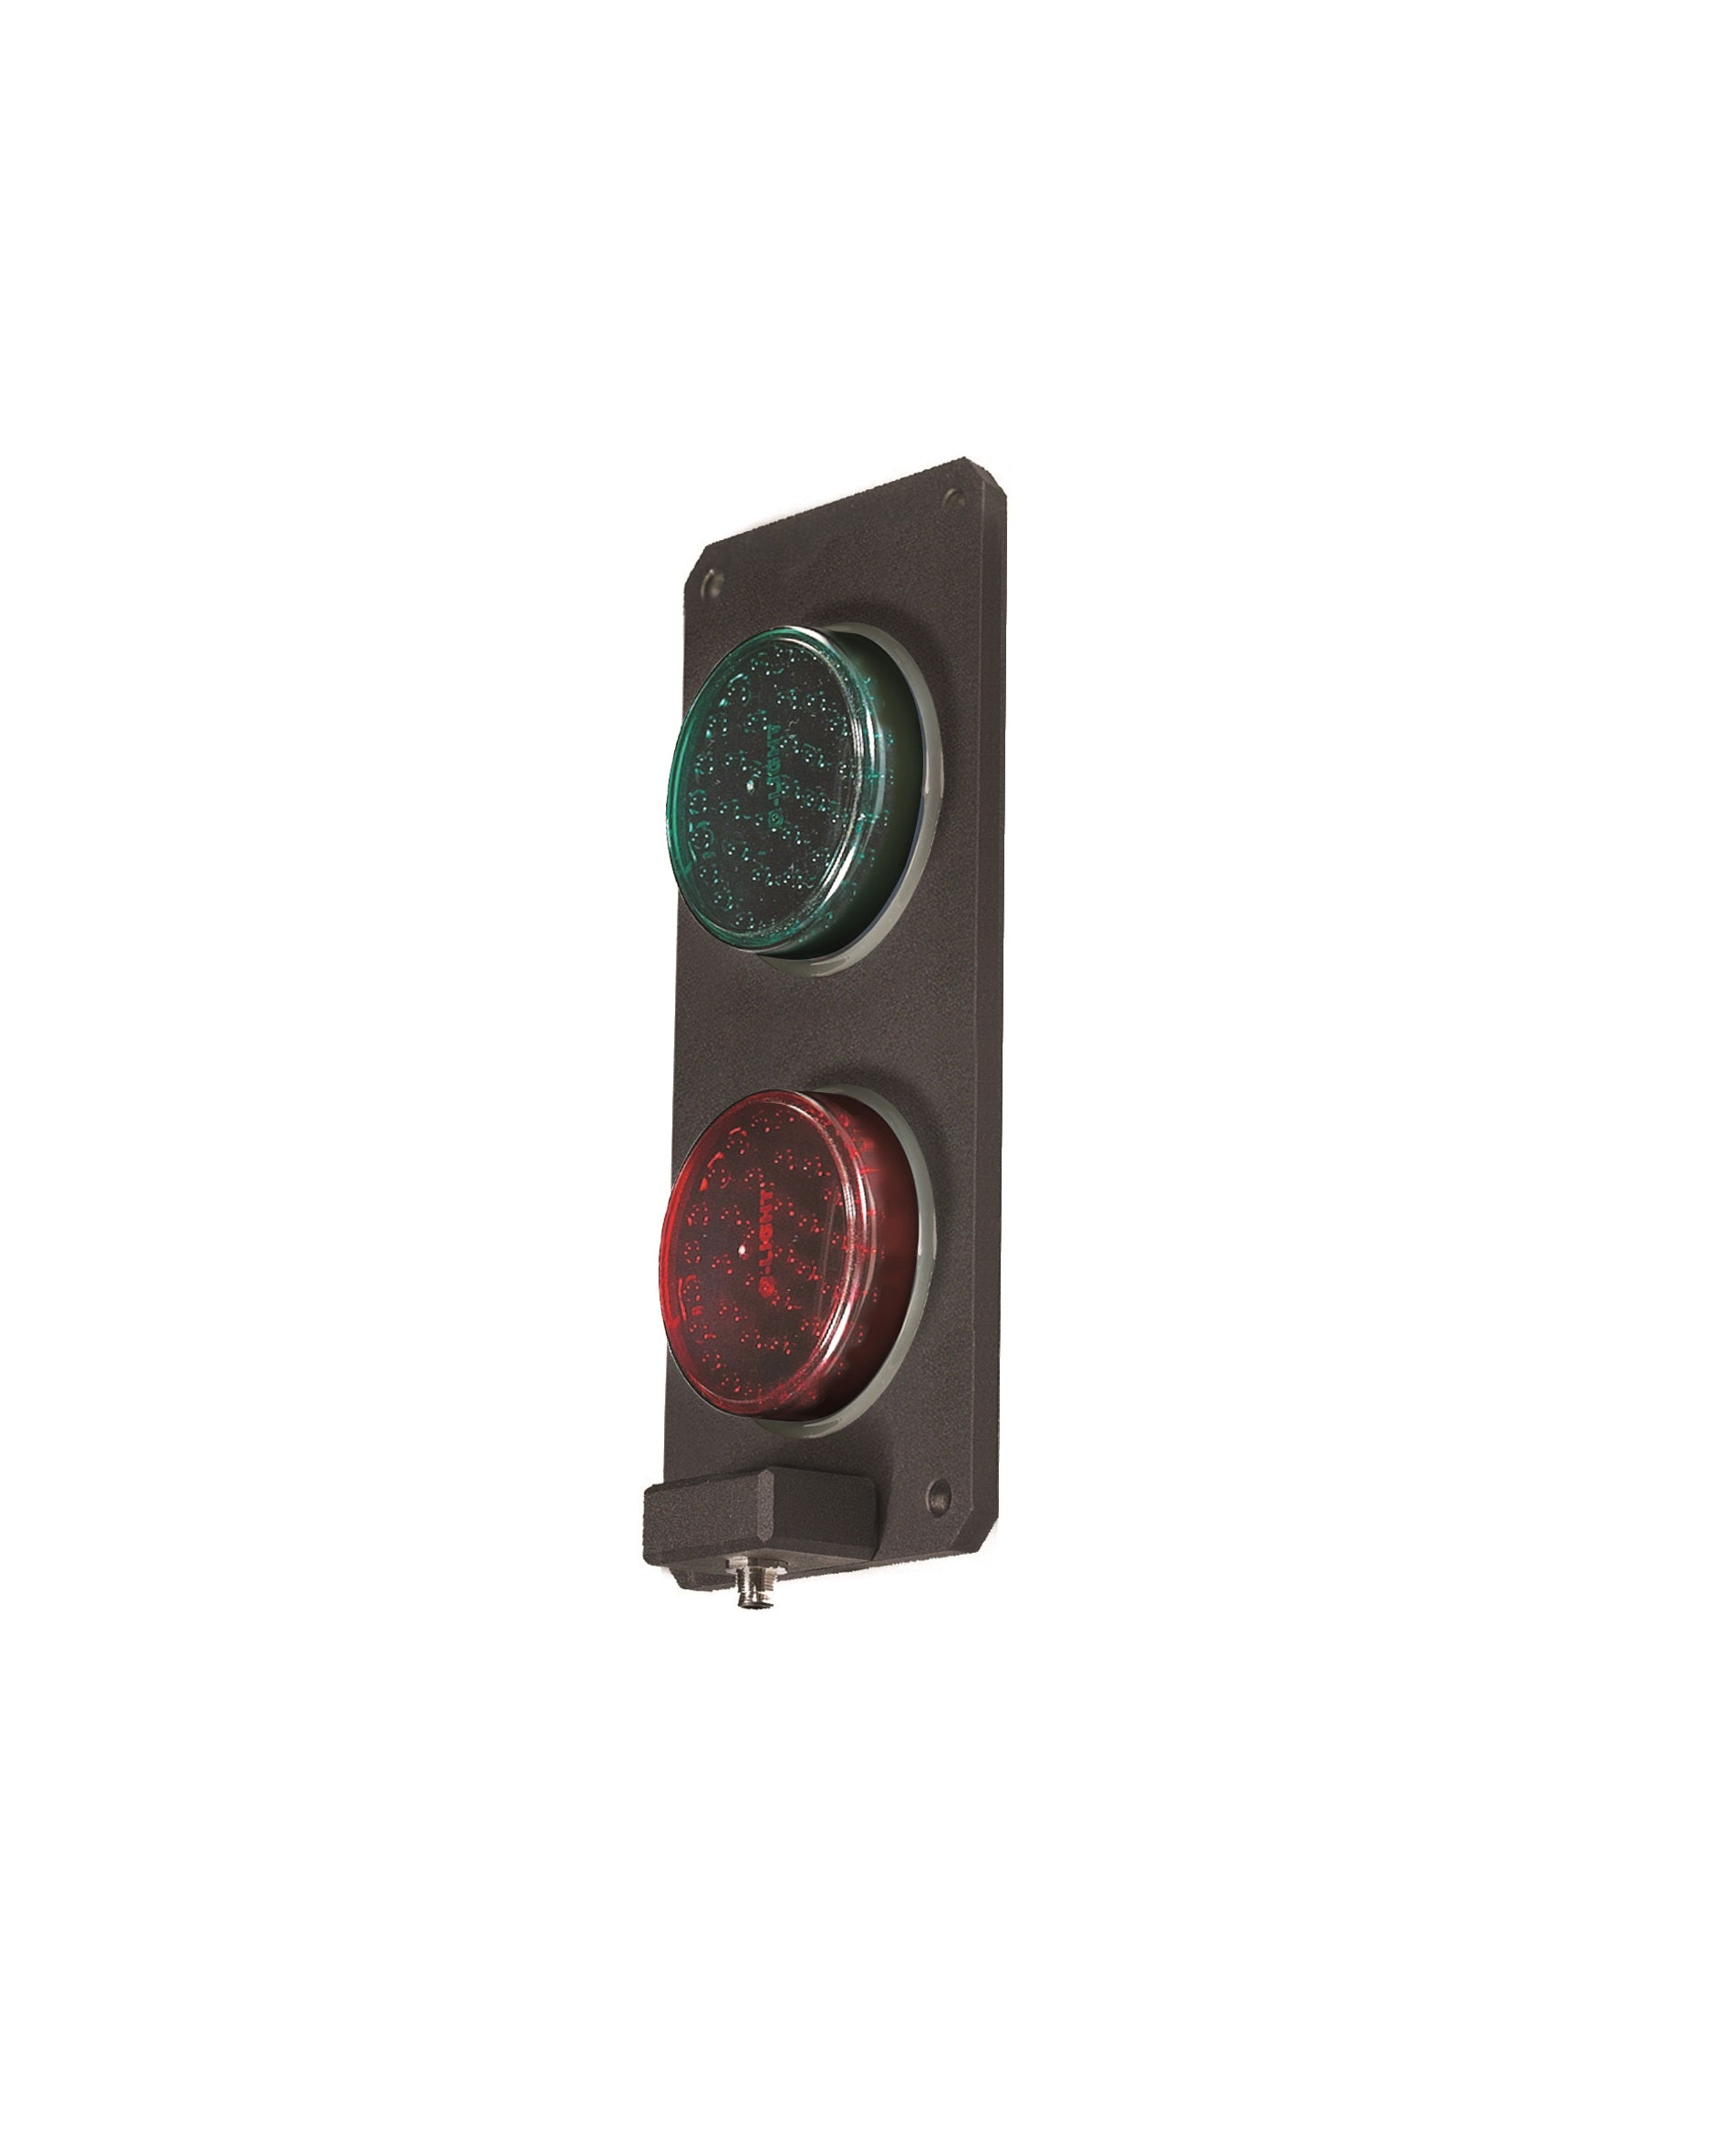 Qlight SSL200M 2 Aspect 92mm Surface Mount IP68 Metal Body LED Traffic Light